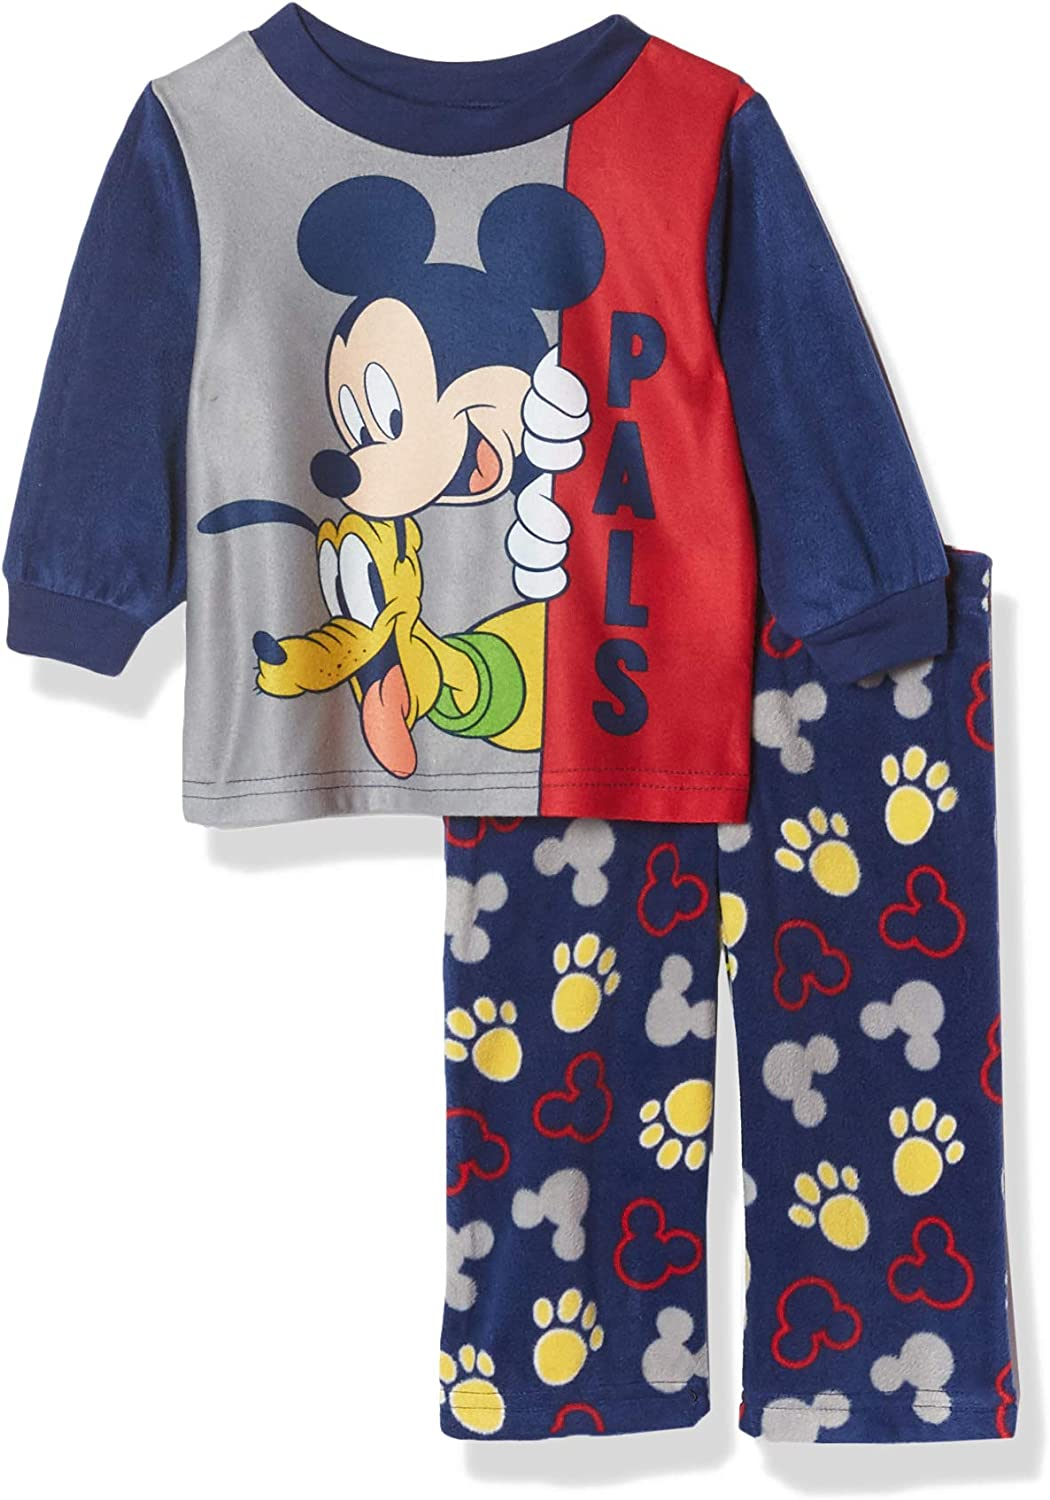 6 Disney Mickey Mouse Boys or Girls 2 Piece Top with Fleece Bottom Pants 2T 5